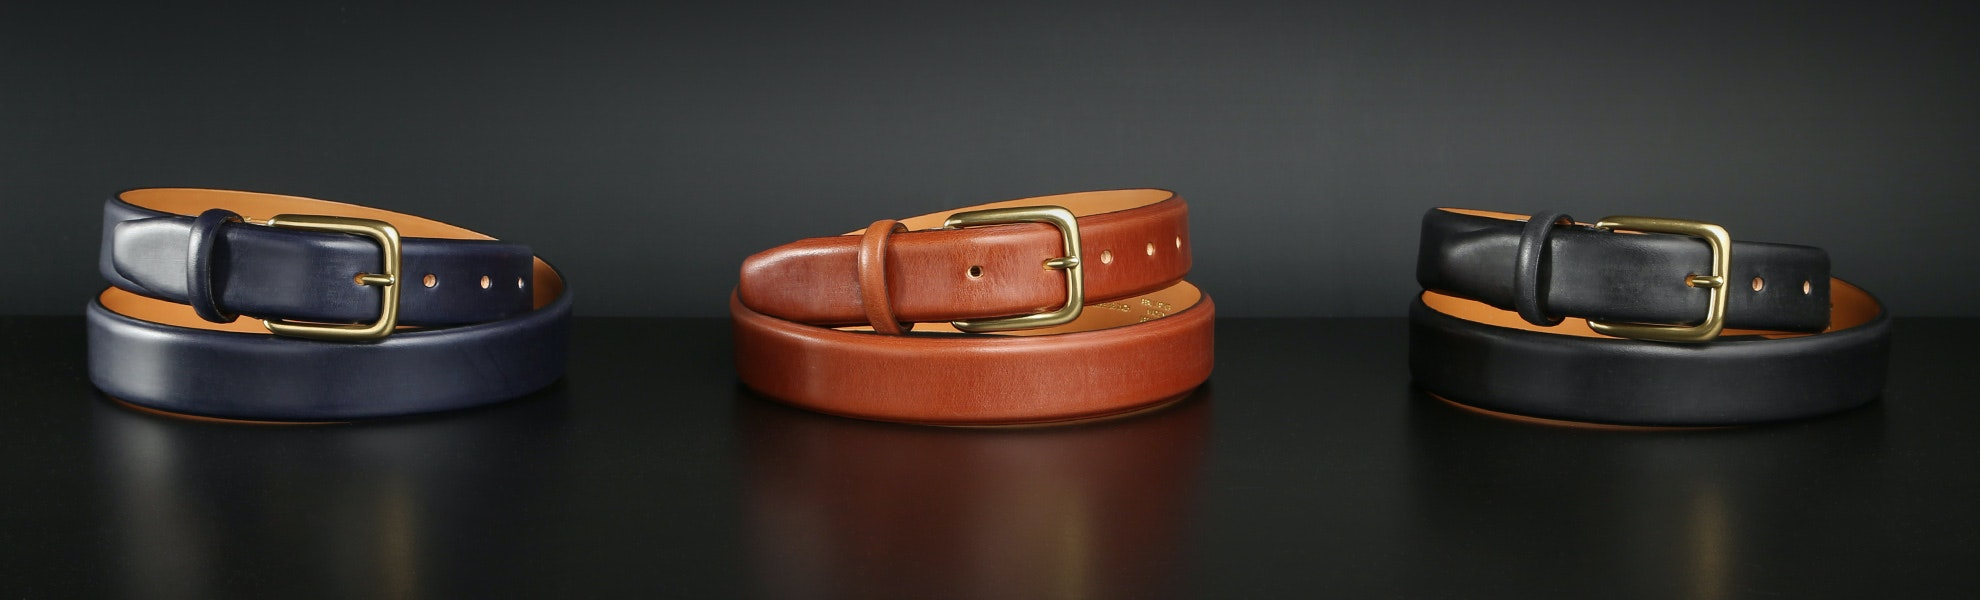 British Belt Co. Bridle Belt